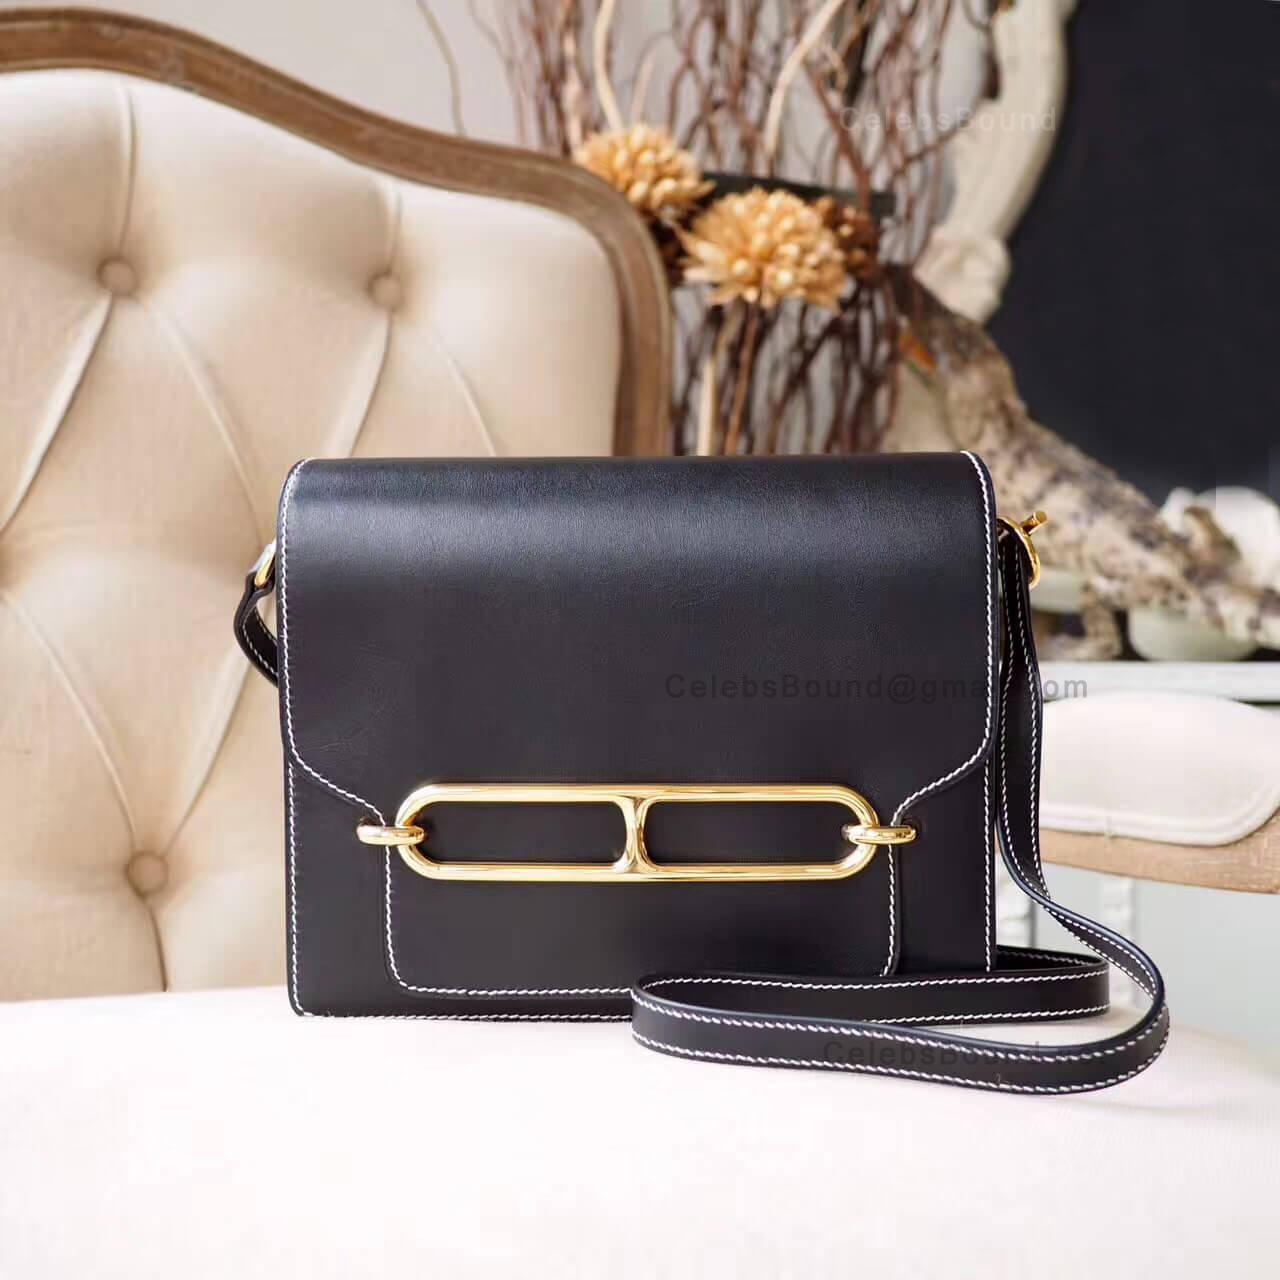 Hermes Roulis 23 White Stitching Bag in ck89 Noir Evercolor GHW